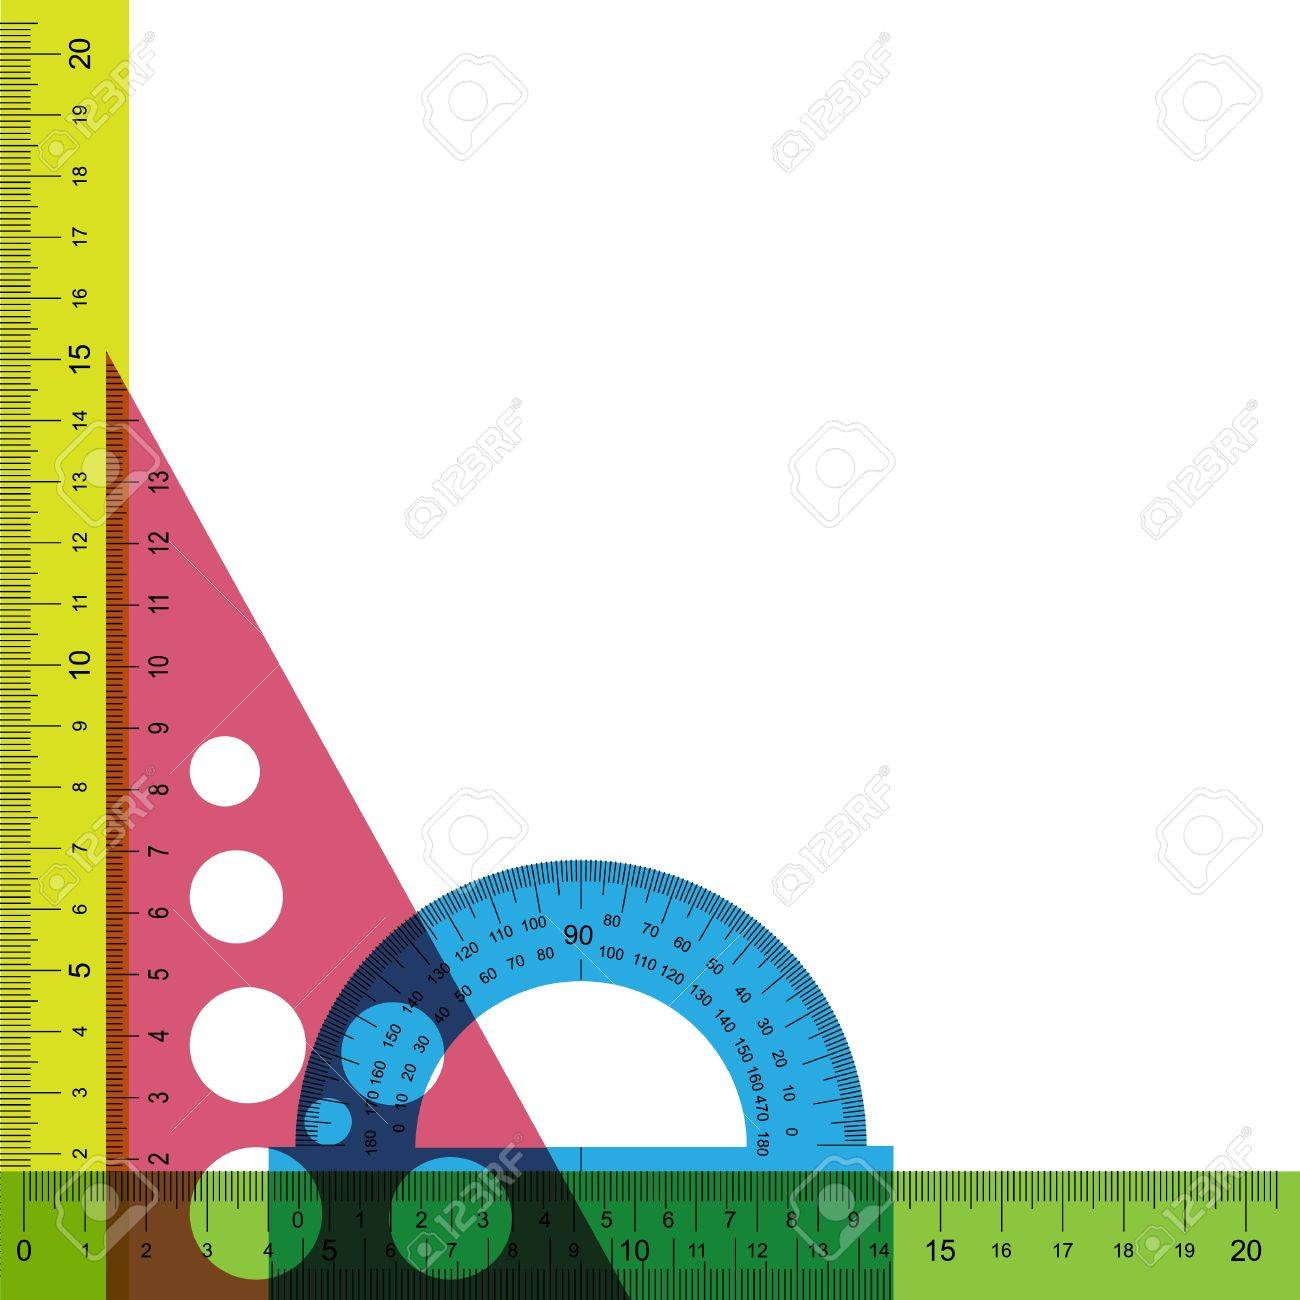 Ruler, protractor and triangle with simulated transparency. Does not contain any transparent elements. Stock Vector - 9311639